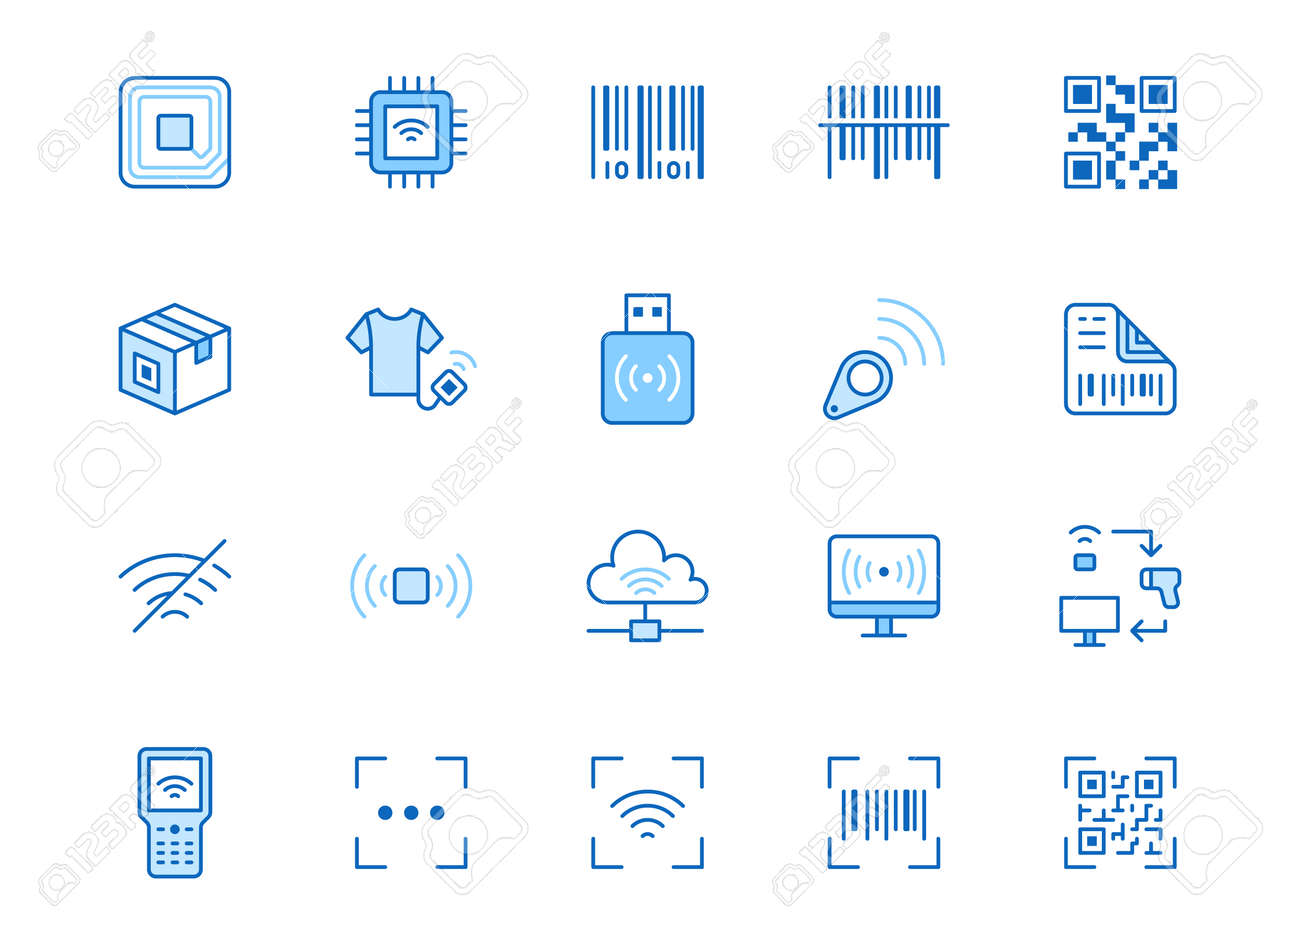 RFID, qr code, barcode line icon set. Price tag scanner, label reader, identification microchip vector illustration. Simple outline signs retail safety application. Blue color, Editable Stroke. - 160694976